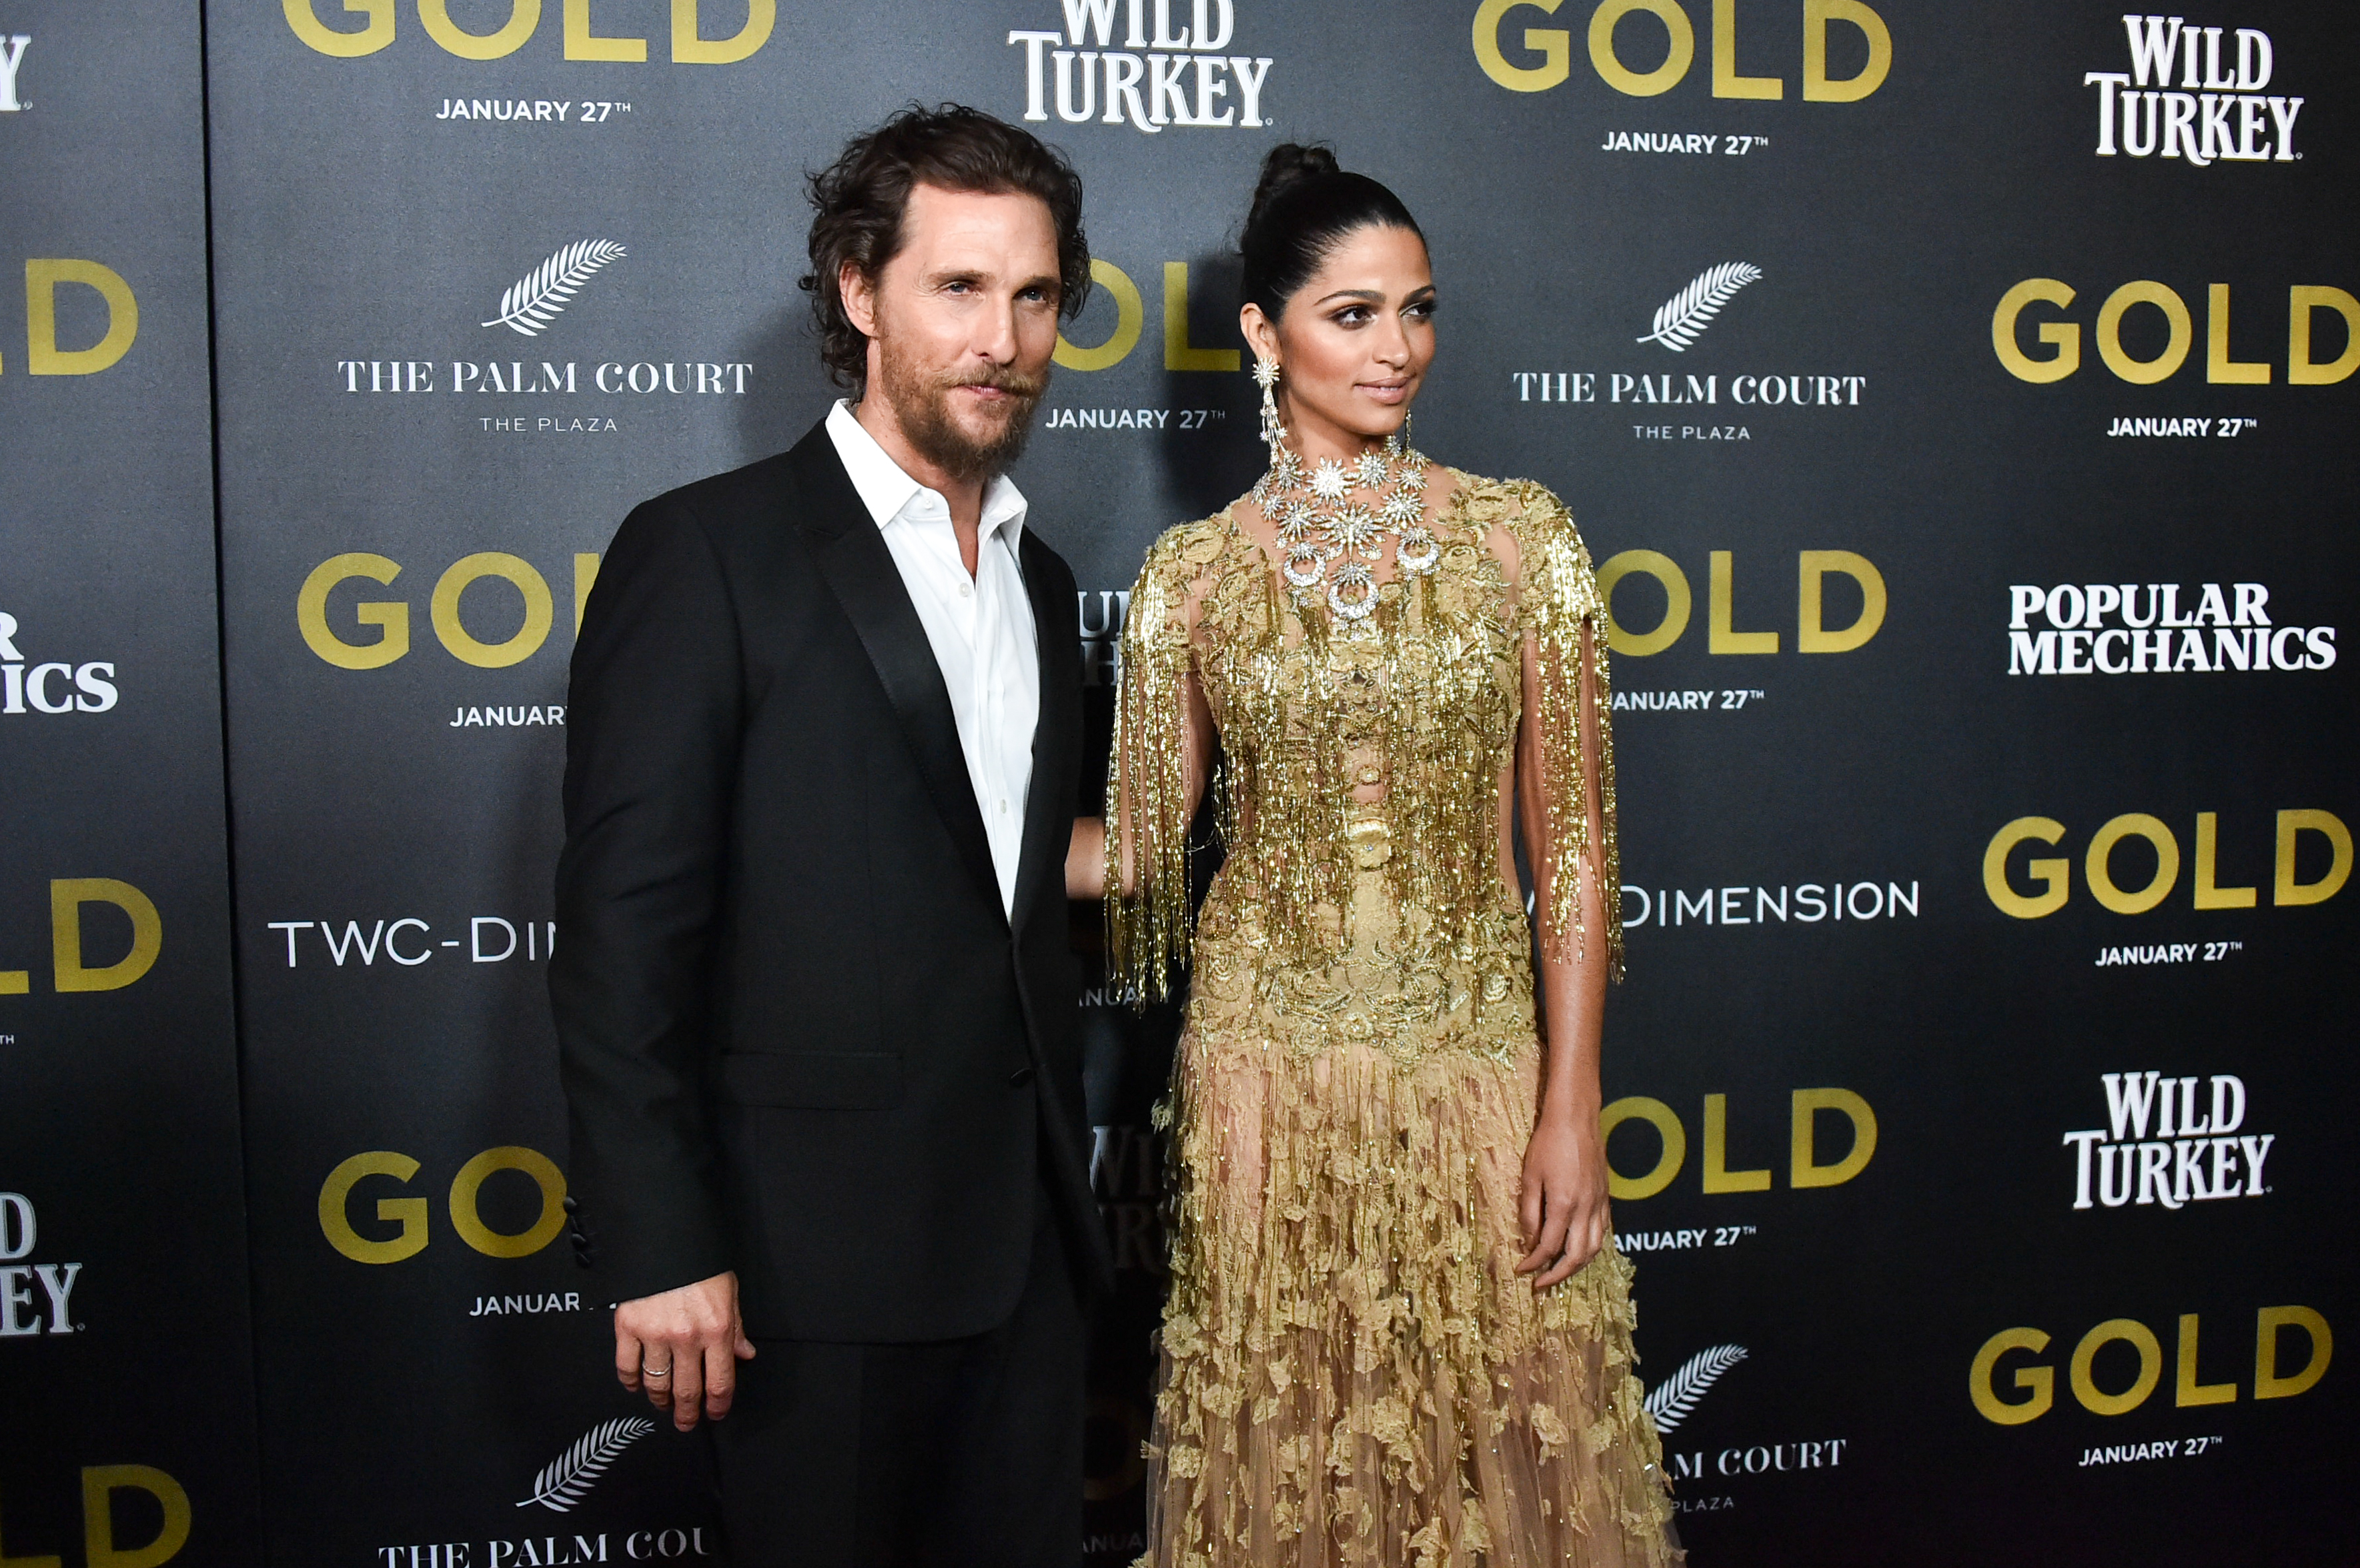 NEW YORK, NY - JANUARY 17:  Actors Matthew McConaughey and Camila Alves attends the world premiere of 'Gold' hosted by TWC - Dimension with Popular Mechanics, The Palm Court & Wild Turkey Bourbon at AMC Loews Lincoln Square 13 theater at AMC Loews Lincoln Square 13 theater on January 17, 2017 in New York City.  (Photo by Mike Coppola/Getty Images)